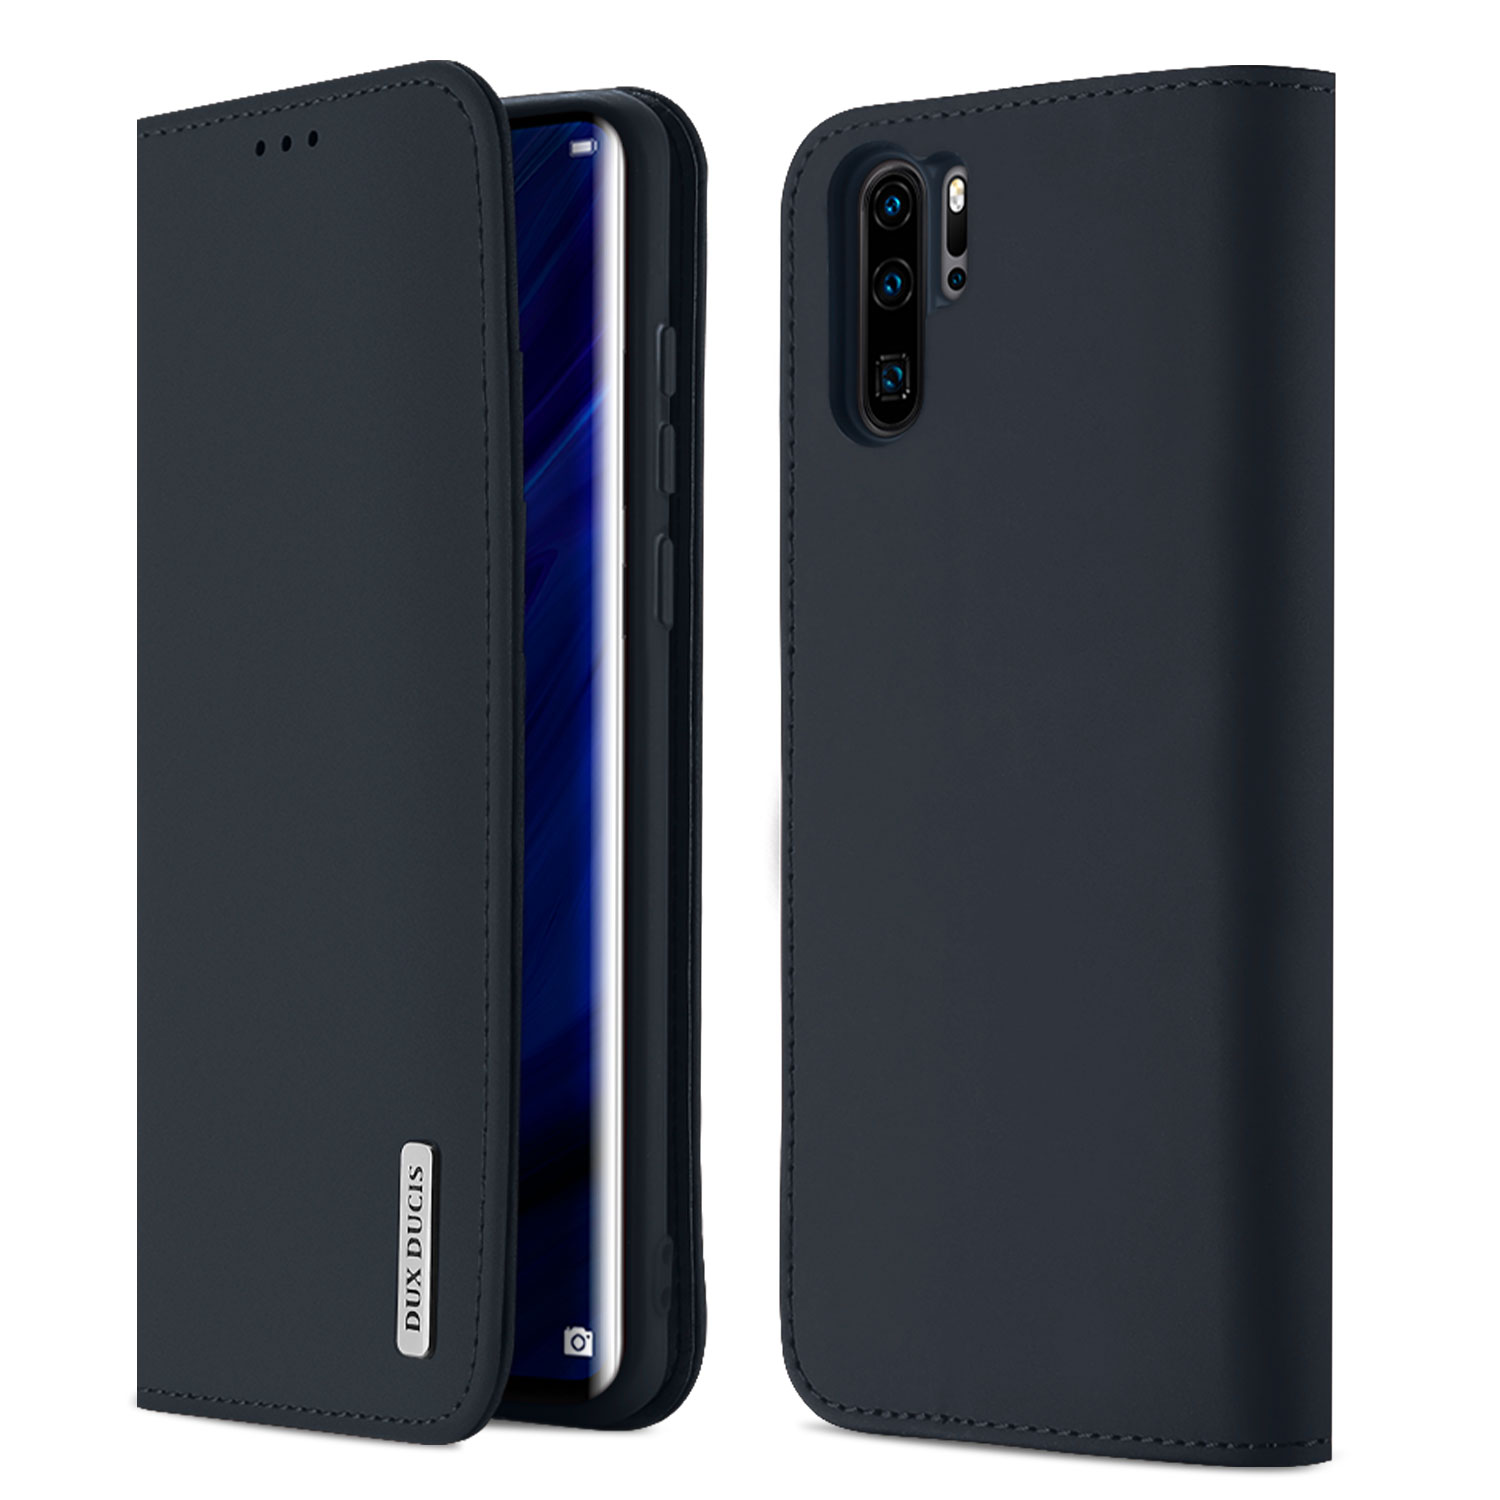 DUX DUCIS For Huawei P30 pro Luxury Genuine Leather Magnetic Flip Cover Full Protective Case with Bracket Card Slot blue_Huawei P30 pro